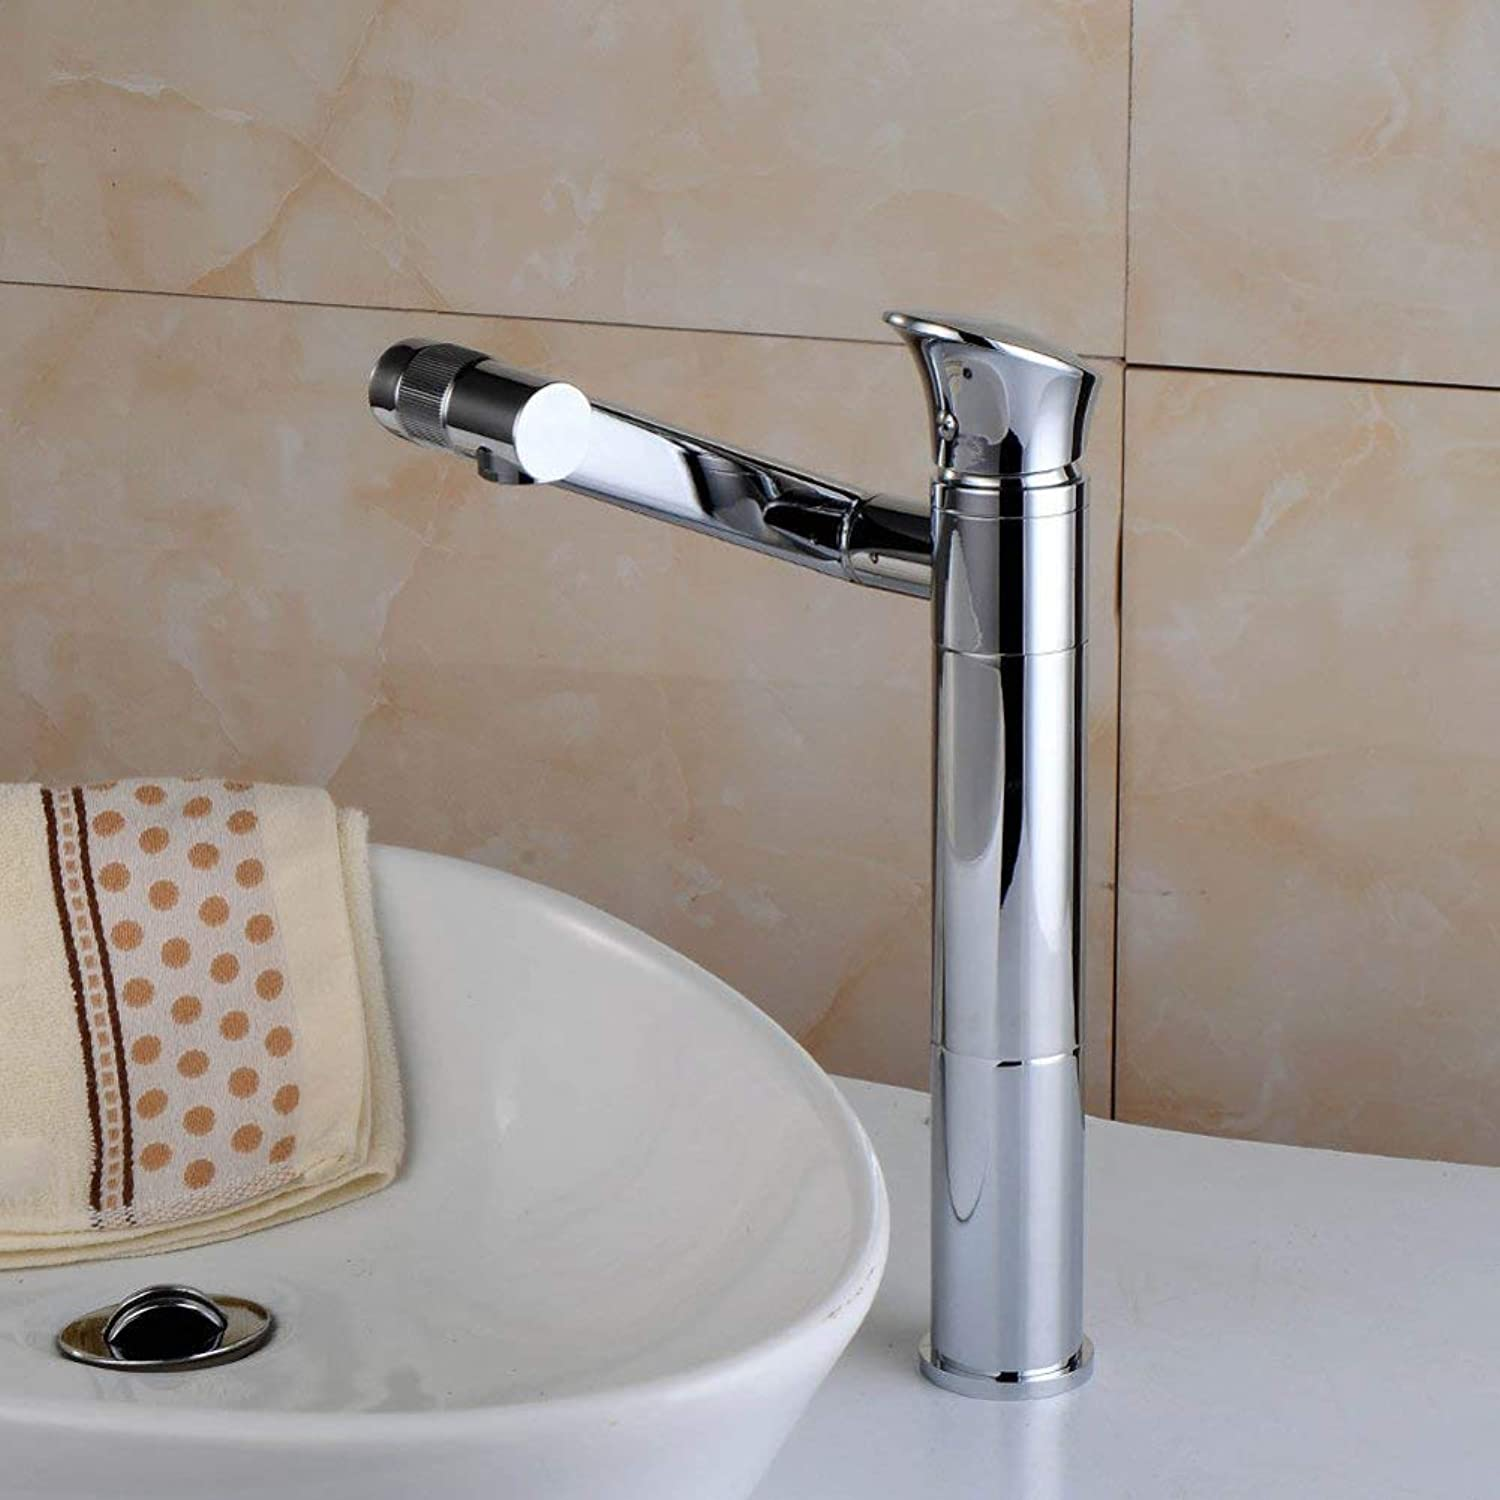 FaucetEuropean washbasin faucetBathroom redating washbasin faucetoverhead basin heightening hot and cold faucet